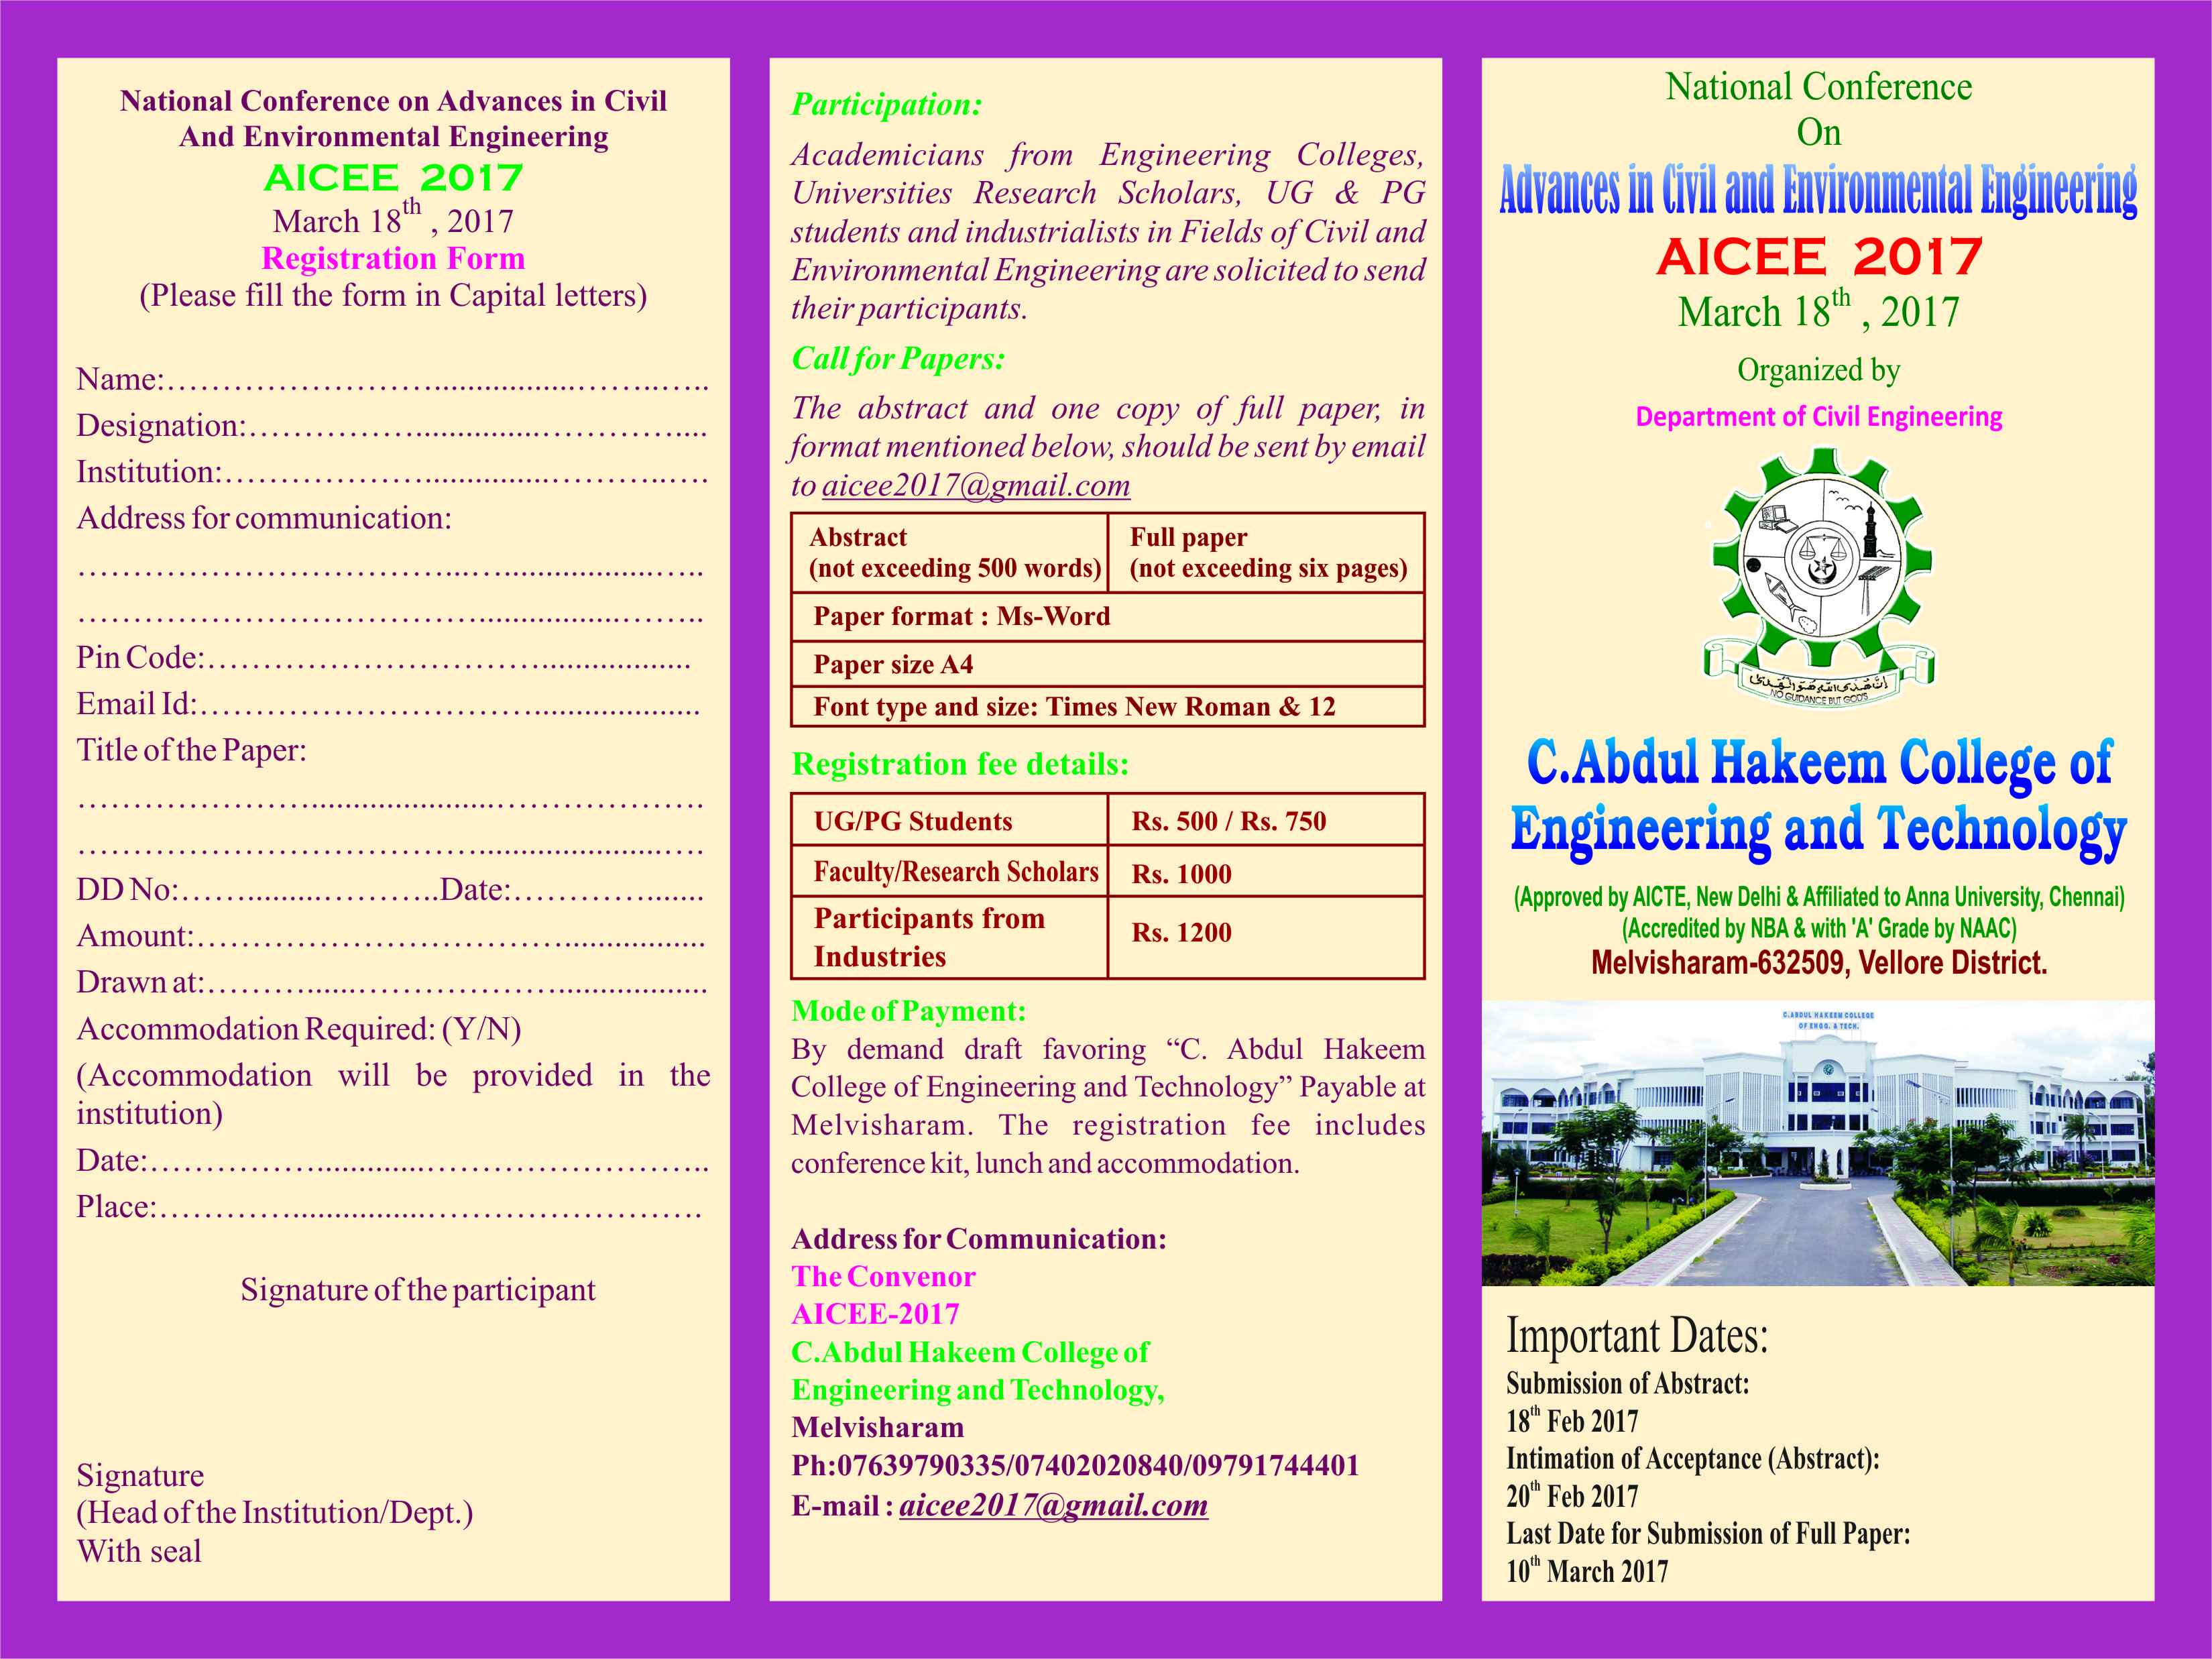 Advances in Civil and Environmental Engineering AICEE 2017